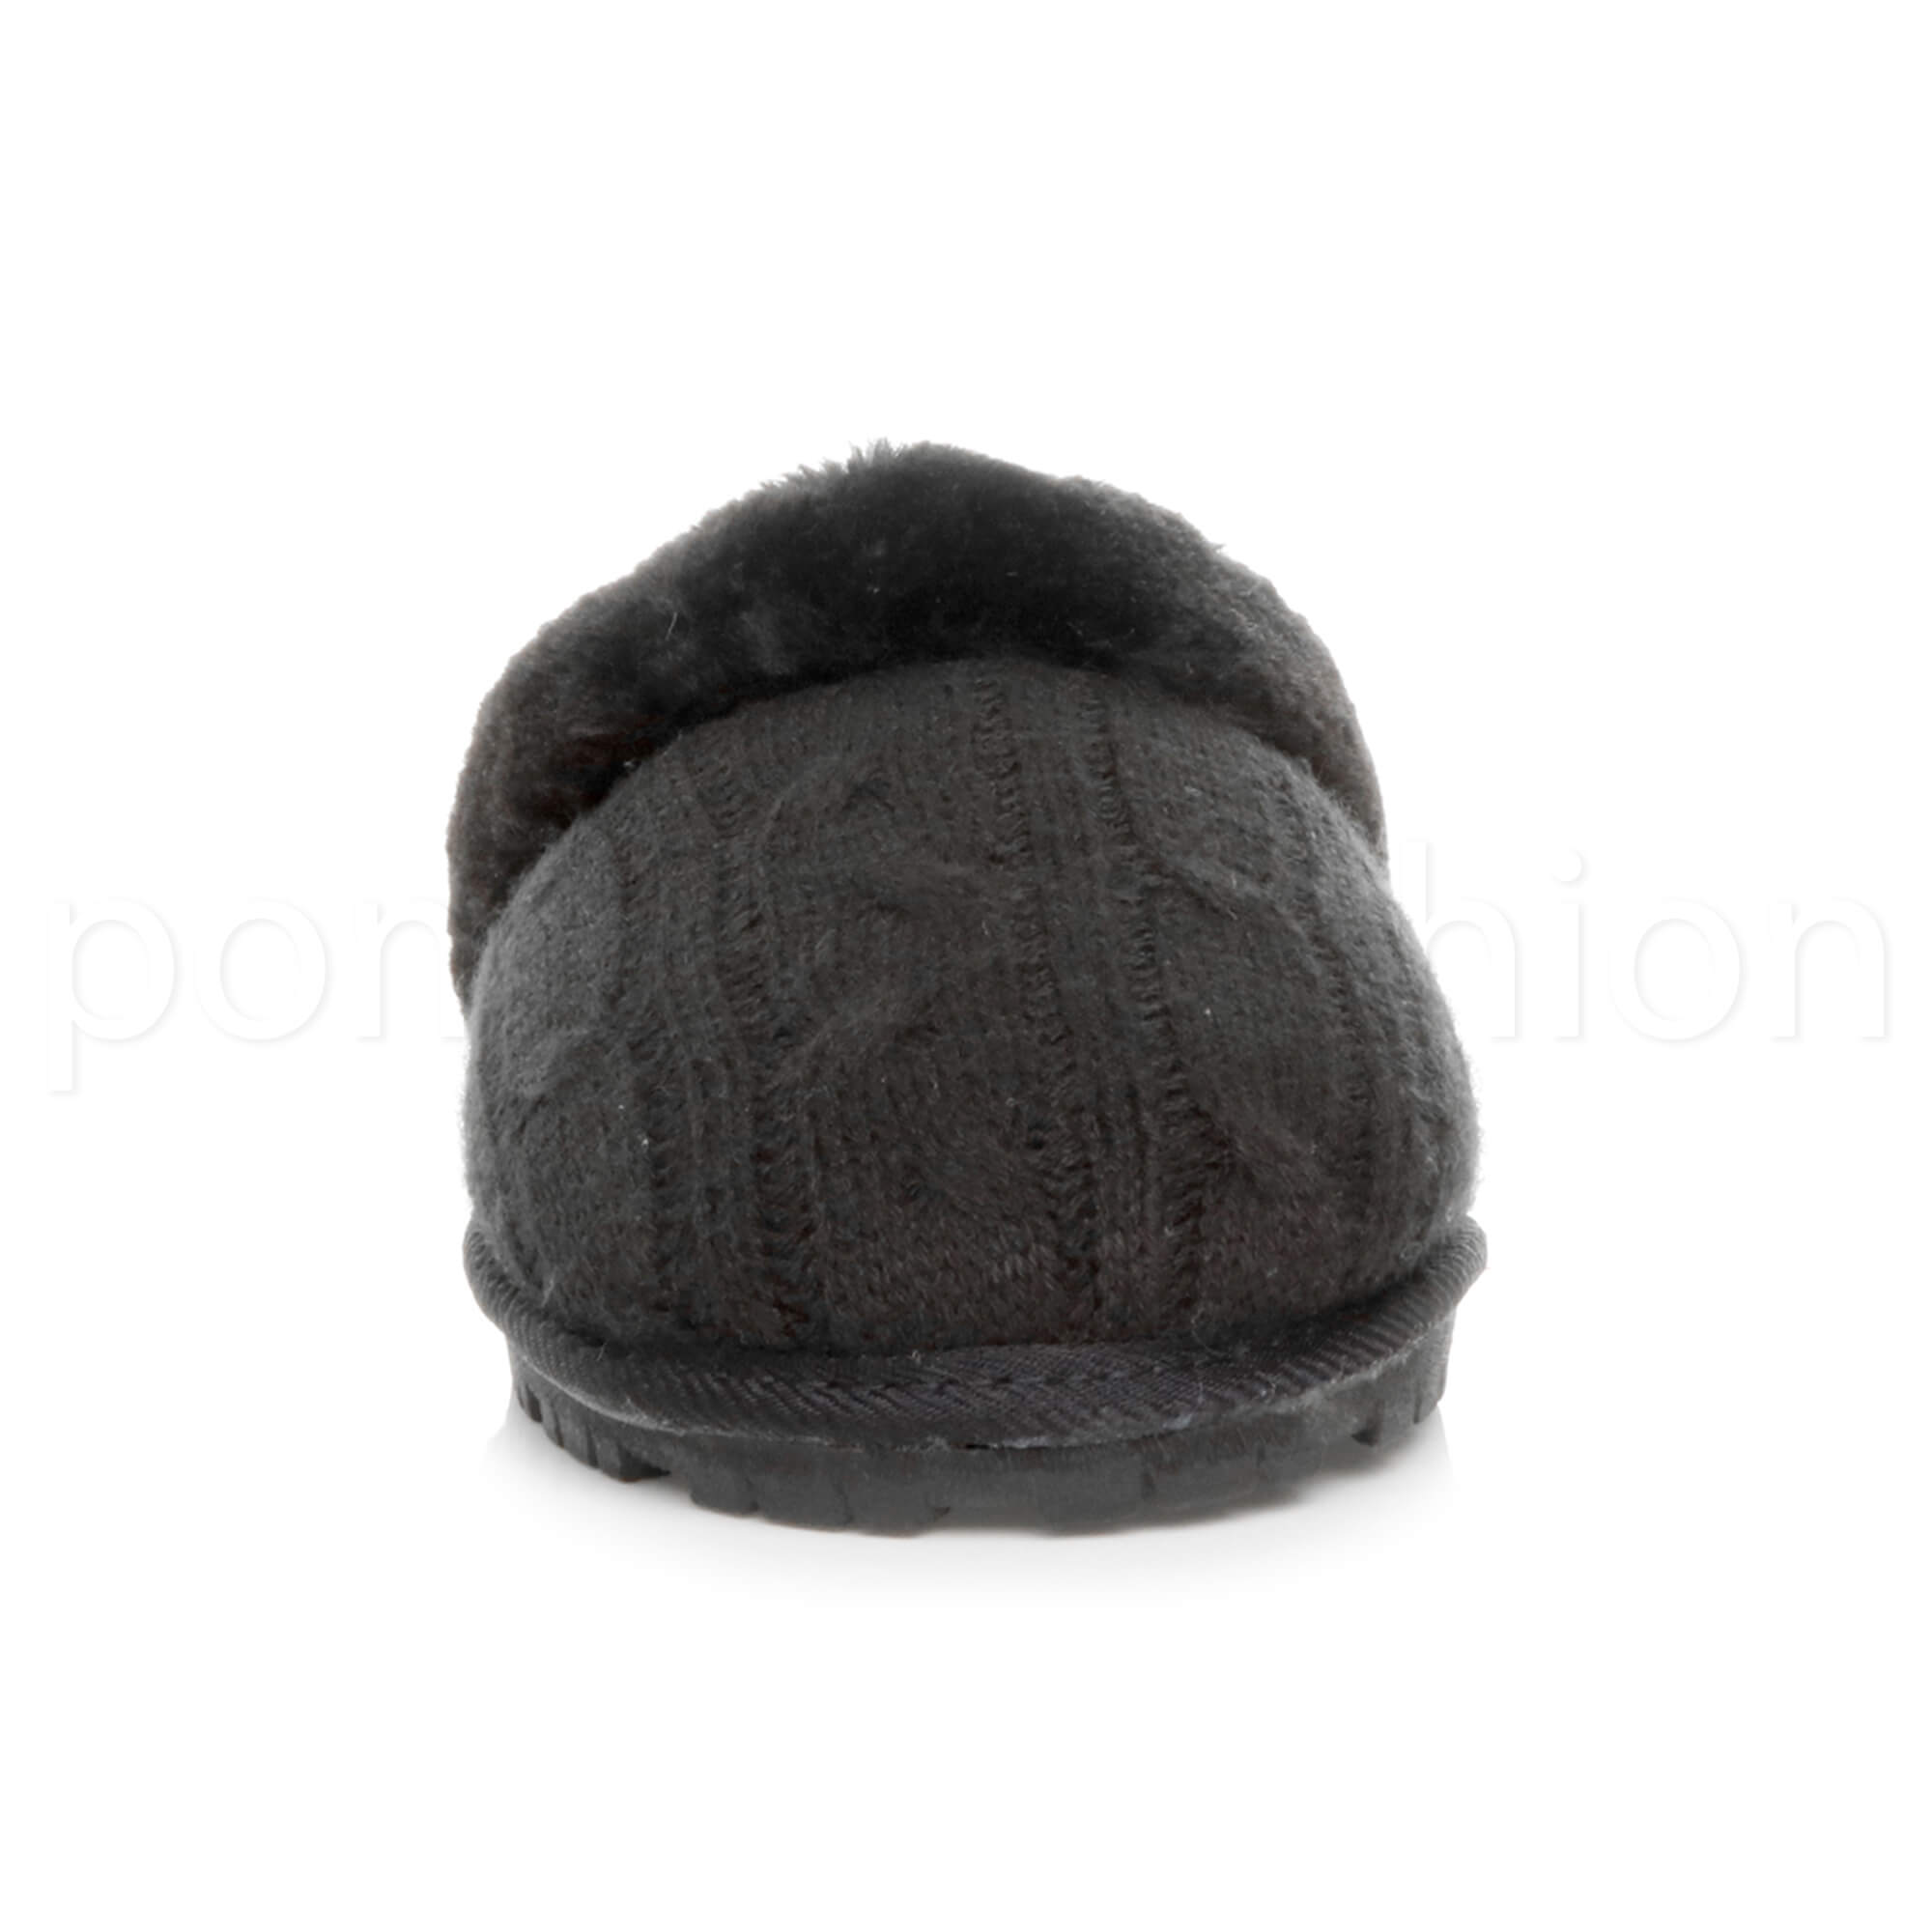 WOMENS-LADIES-FLAT-FUR-LINED-COMFORTABLE-WINTER-MULES-SLIPPERS-HOUSE-SHOES-SIZE thumbnail 35